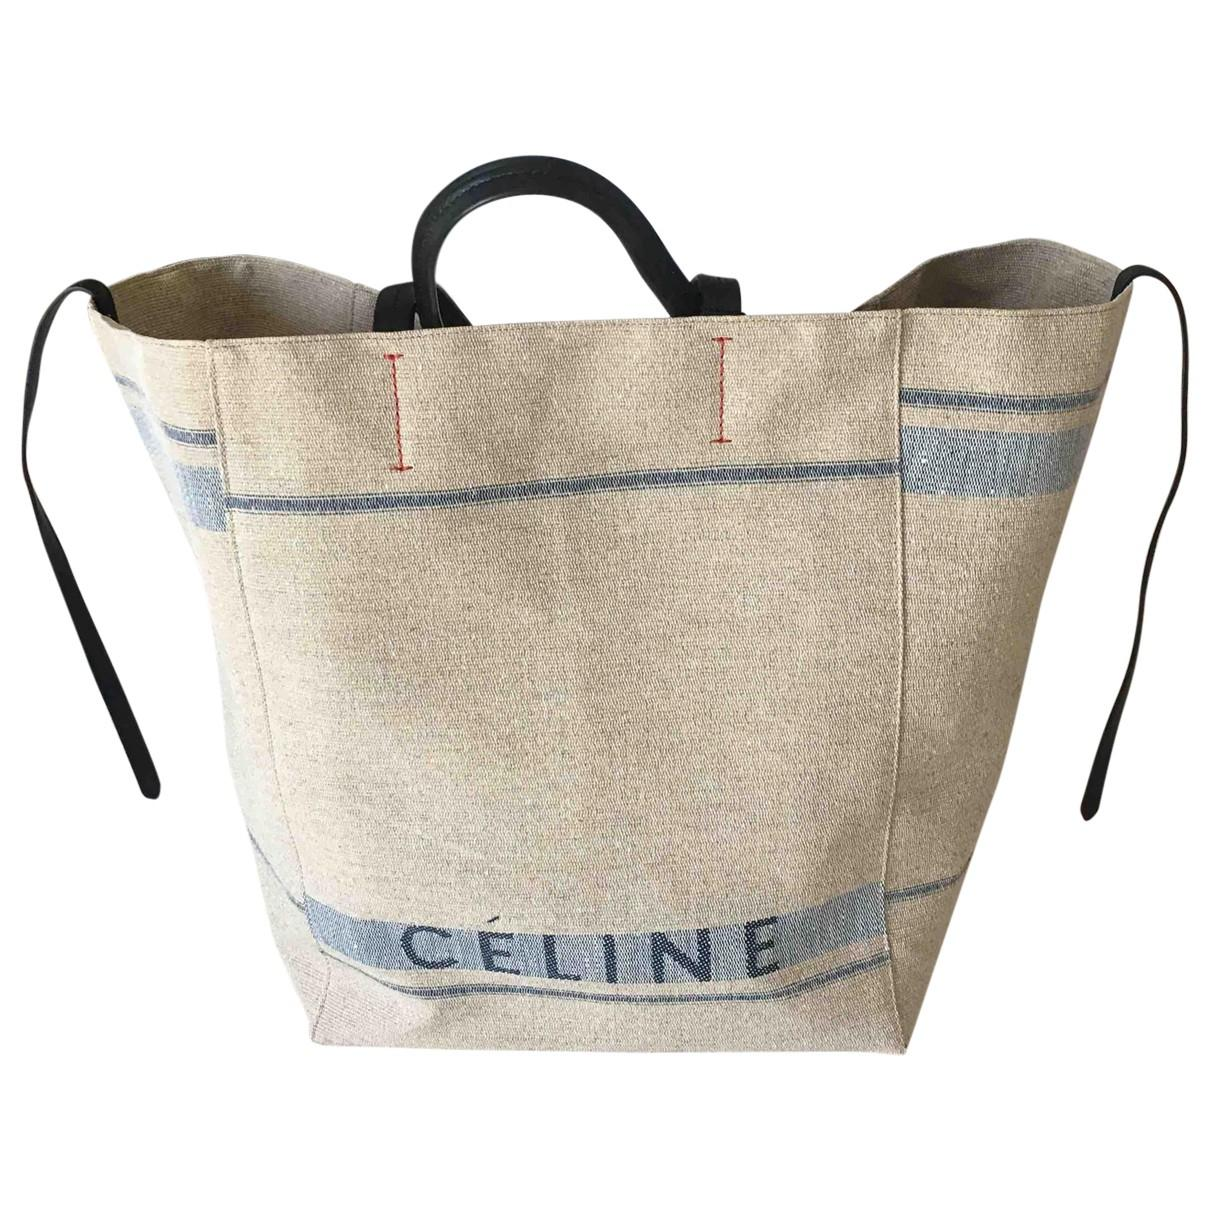 e8350e24cf1d Céline Pre-owned Cabas Phantom Cloth Tote in Natural - Lyst